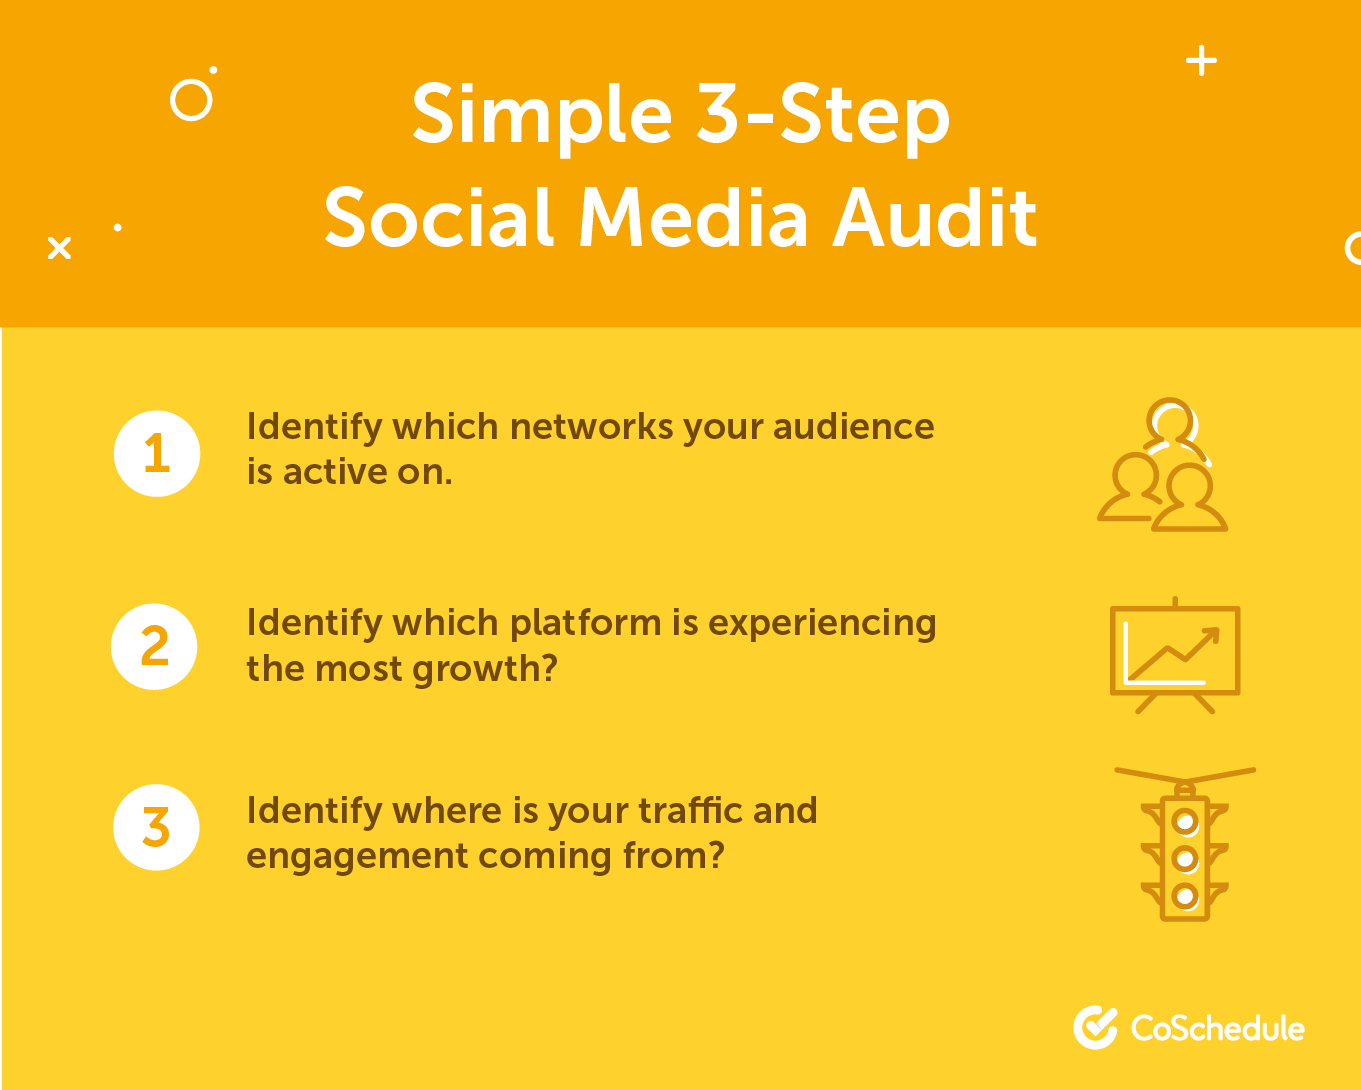 Simple 3-Step Social Media Audit